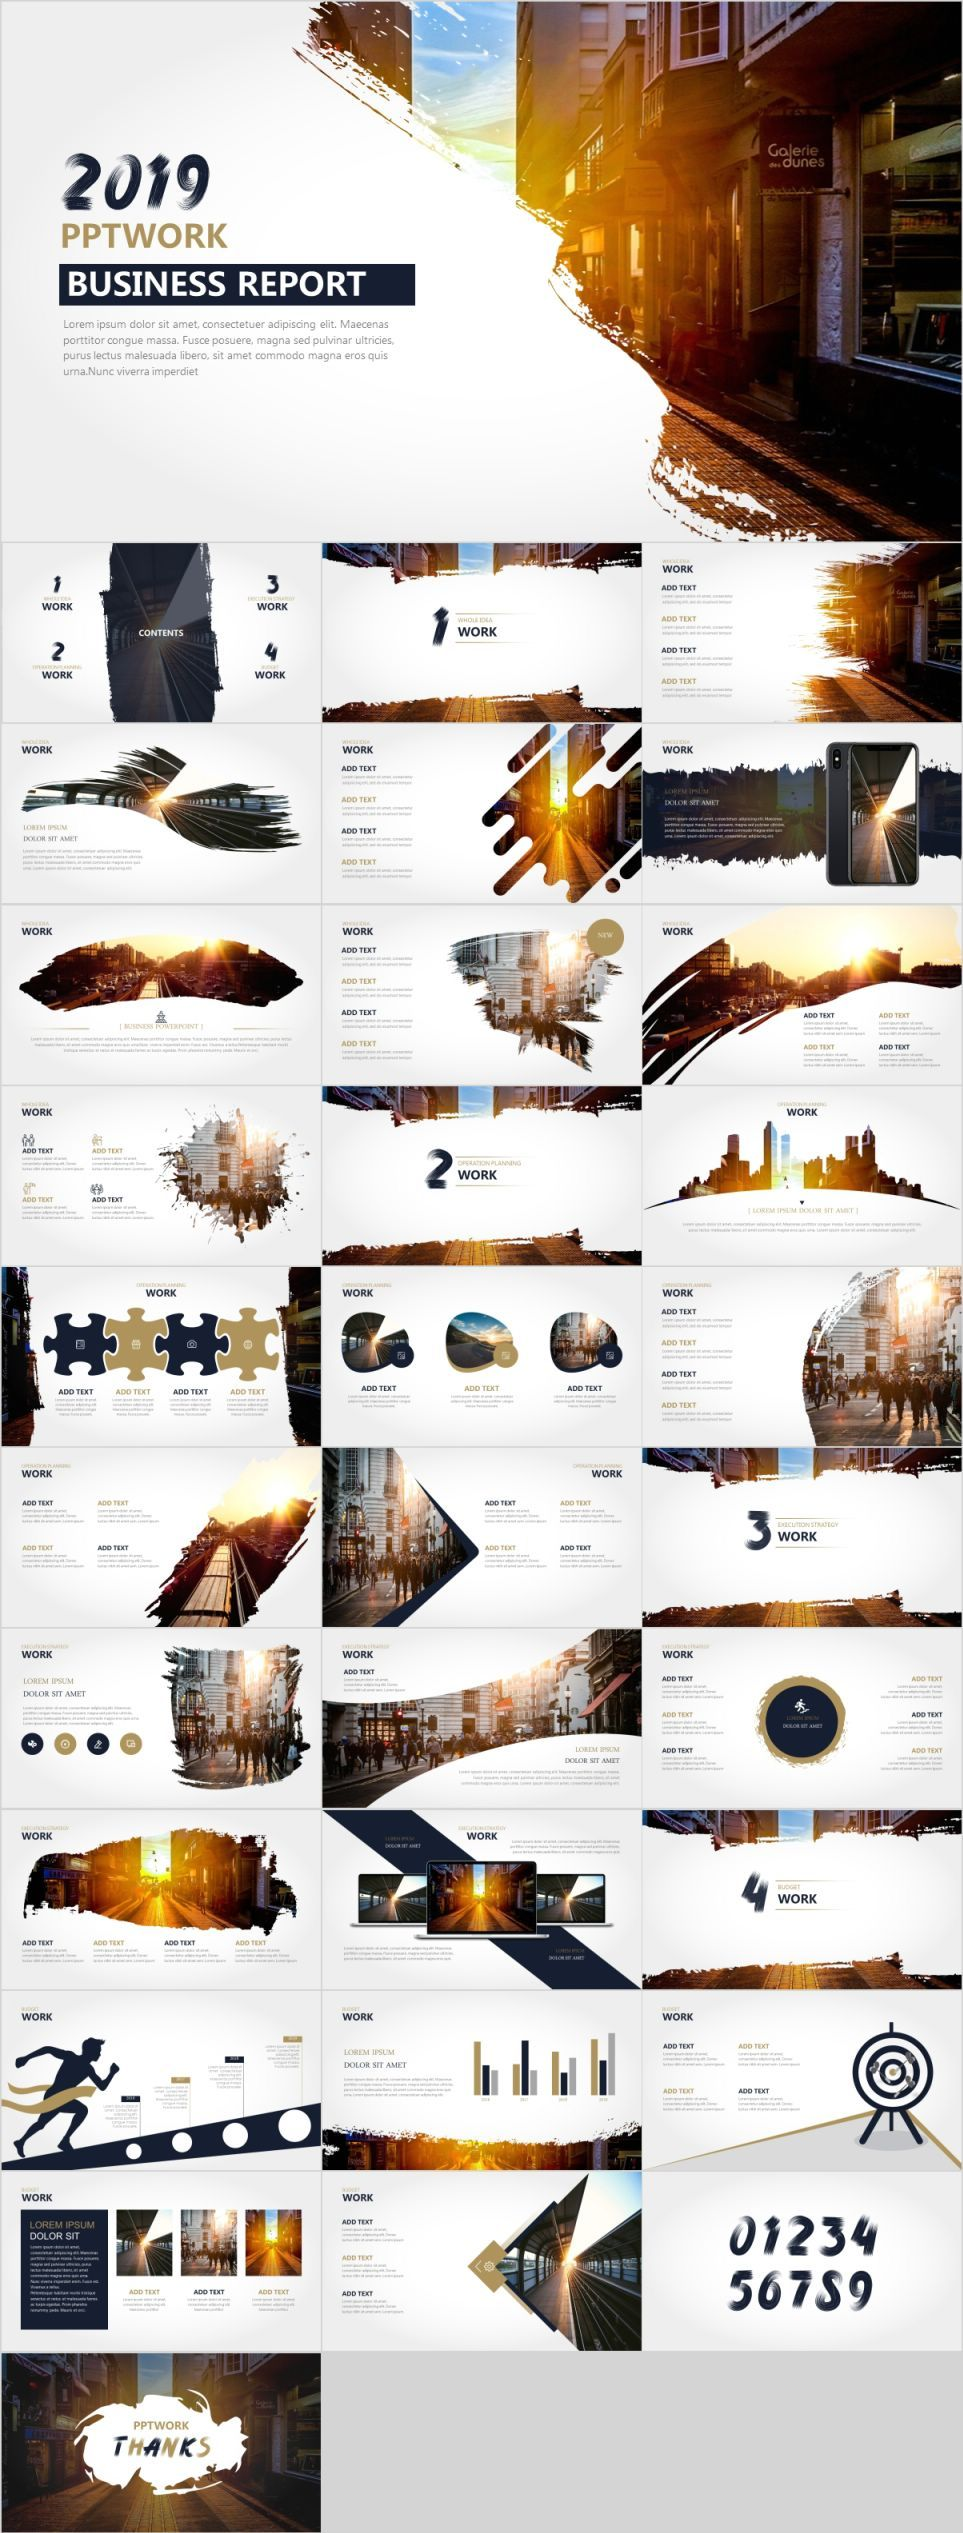 Finance Report Presentation Powerpoint The Highest Quality Power Creative Powerpoint Presentations Powerpoint Presentation Design Powerpoint Design Templates